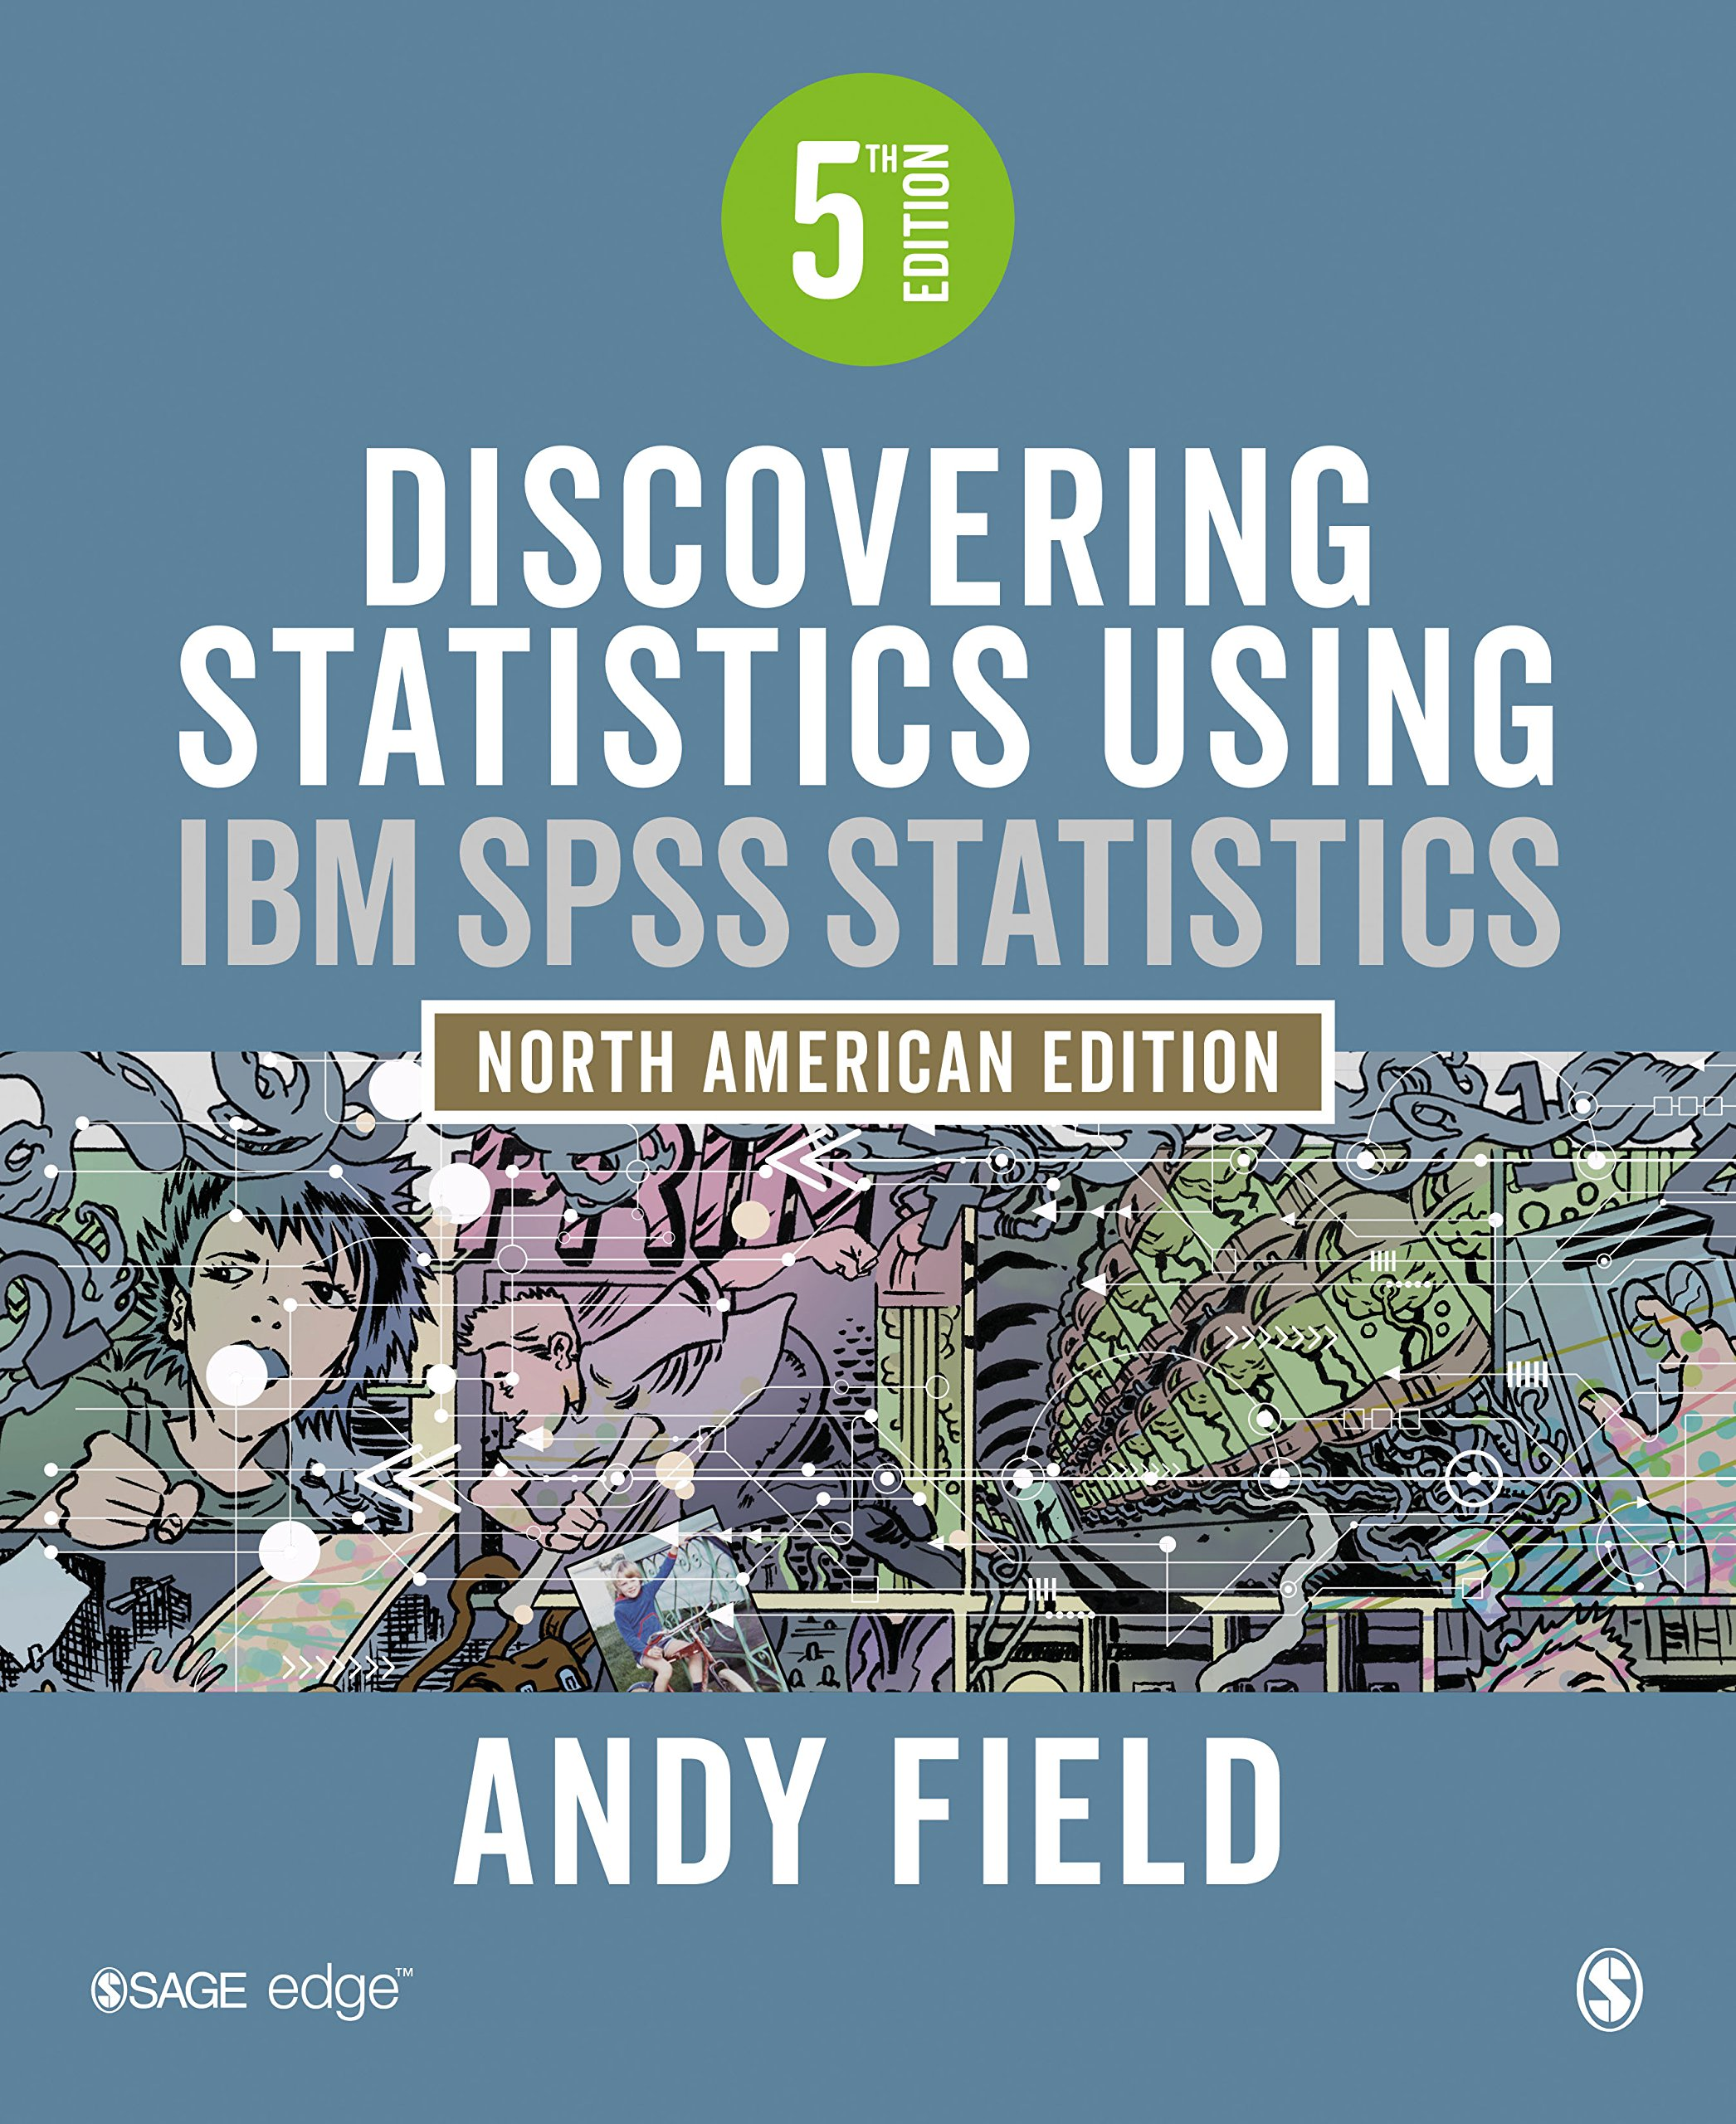 Discovering Statistics Using IBM SPSS Statistics: North American Edition by SAGE Publications Ltd